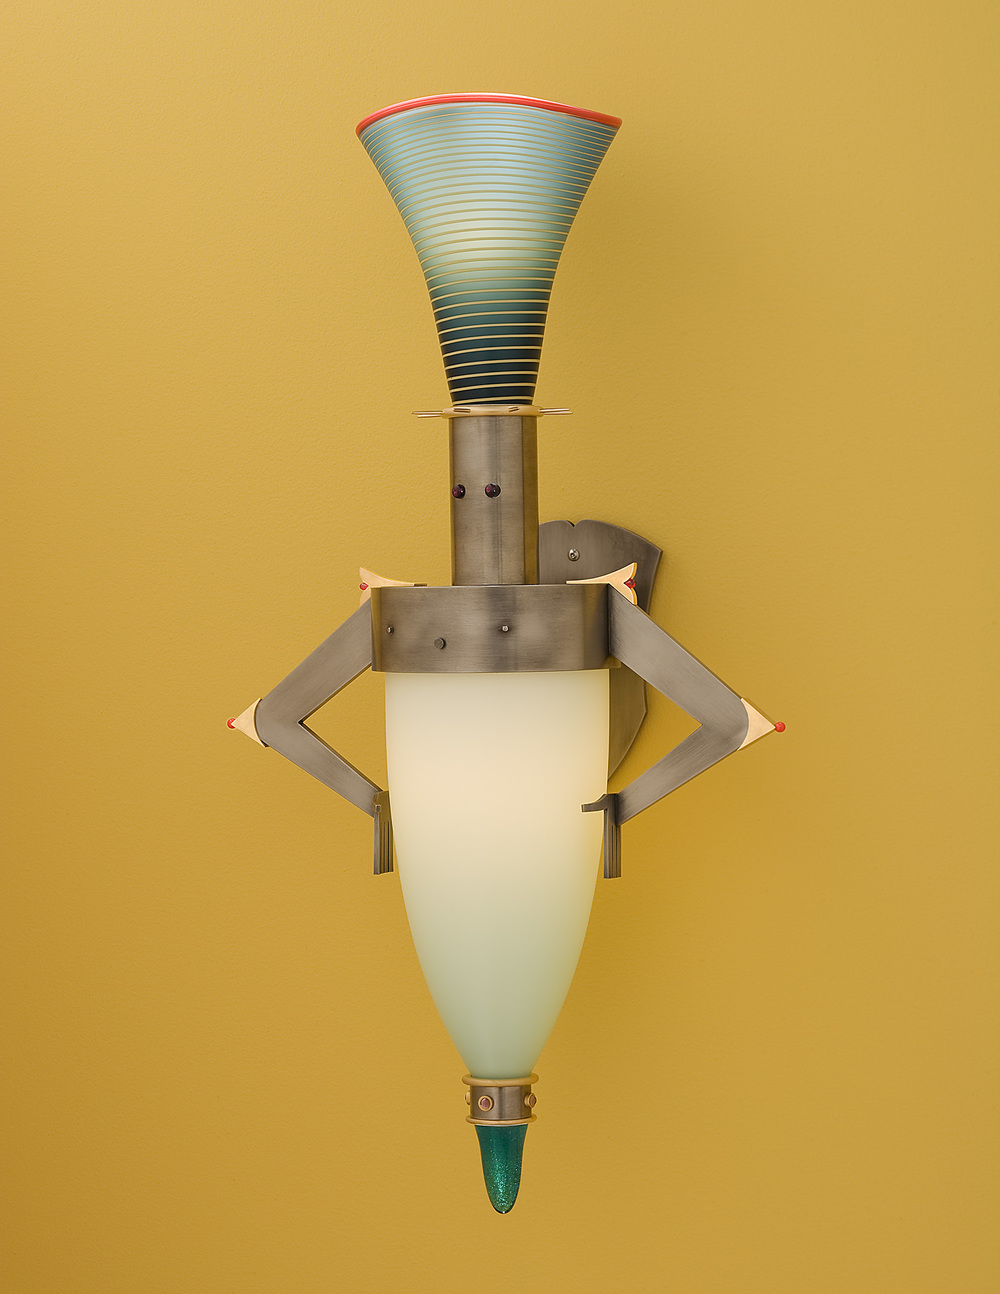 Musto   2007. Blown glass, nickel and gold-plated bronze, pate de verre and lampworked glass. 27 x 14 x 8""